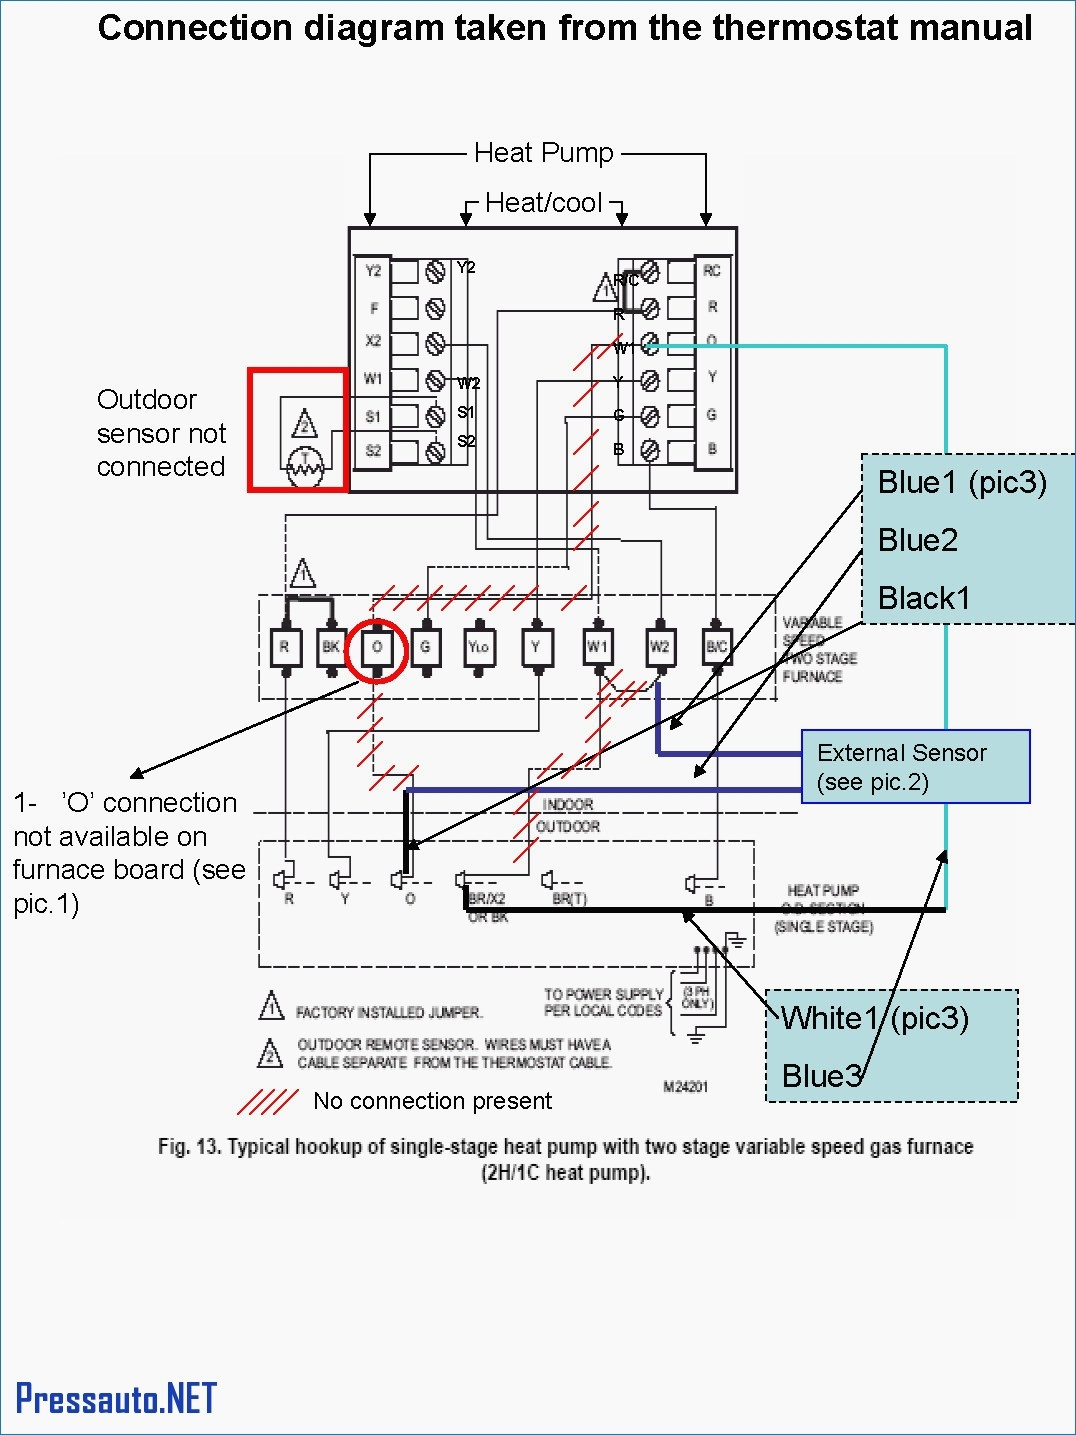 pool heat pump wiring diagram Collection-Pool Heat Pump Wiring Diagram Fresh Trane Heat Pump Troubleshooting Gallery Free Troubleshooting 1-h